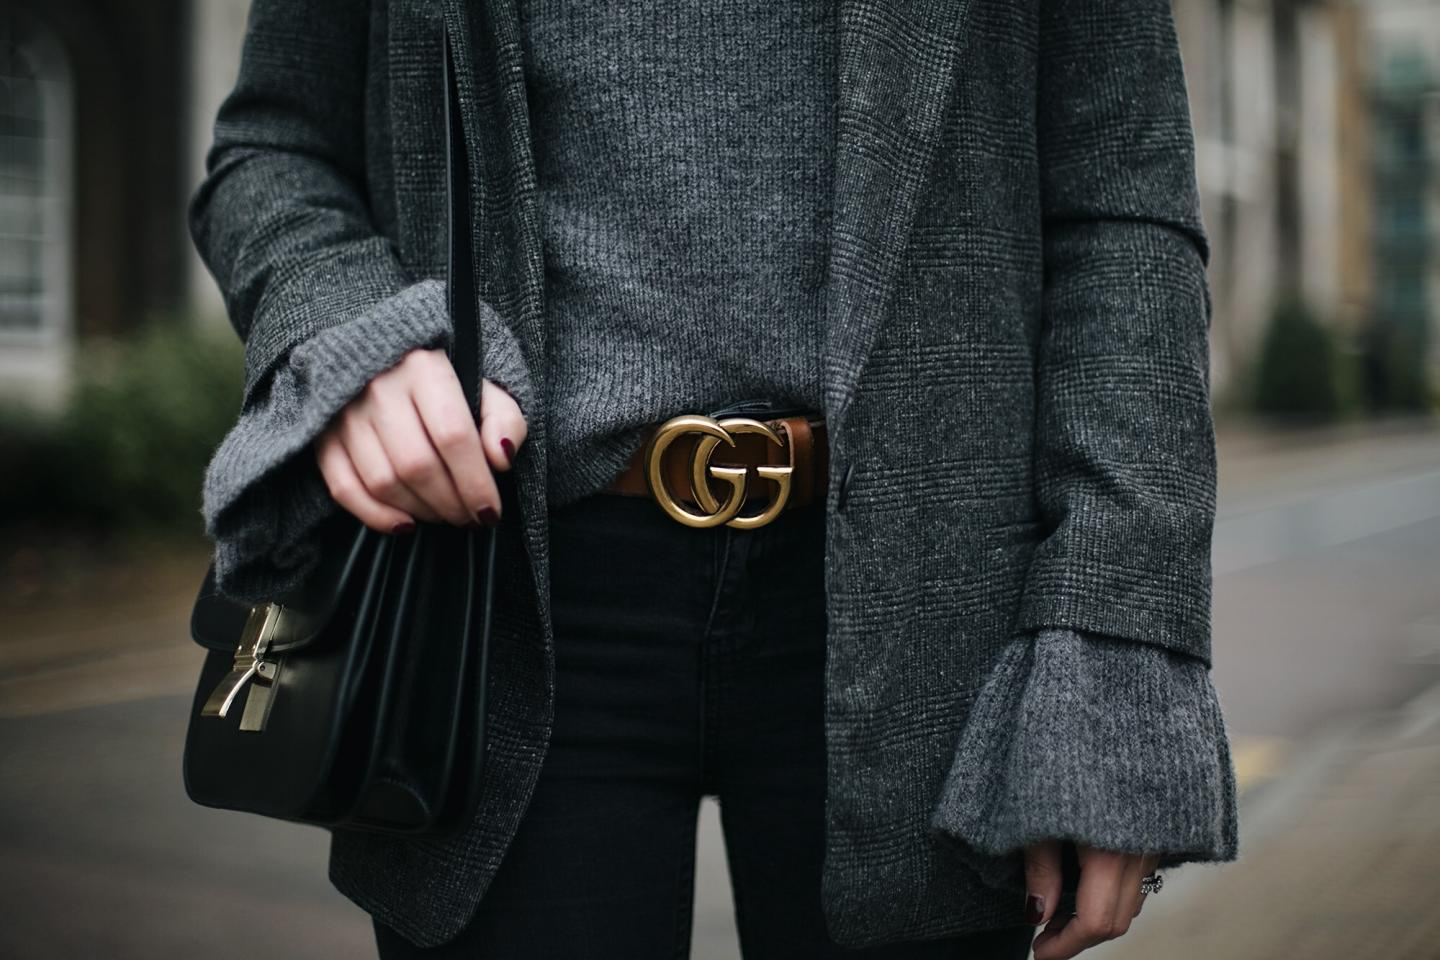 Tan leather Gucci GG belt, Celine box bag, grey bell sleeve jumper, grey check blazer, black skinny jeans